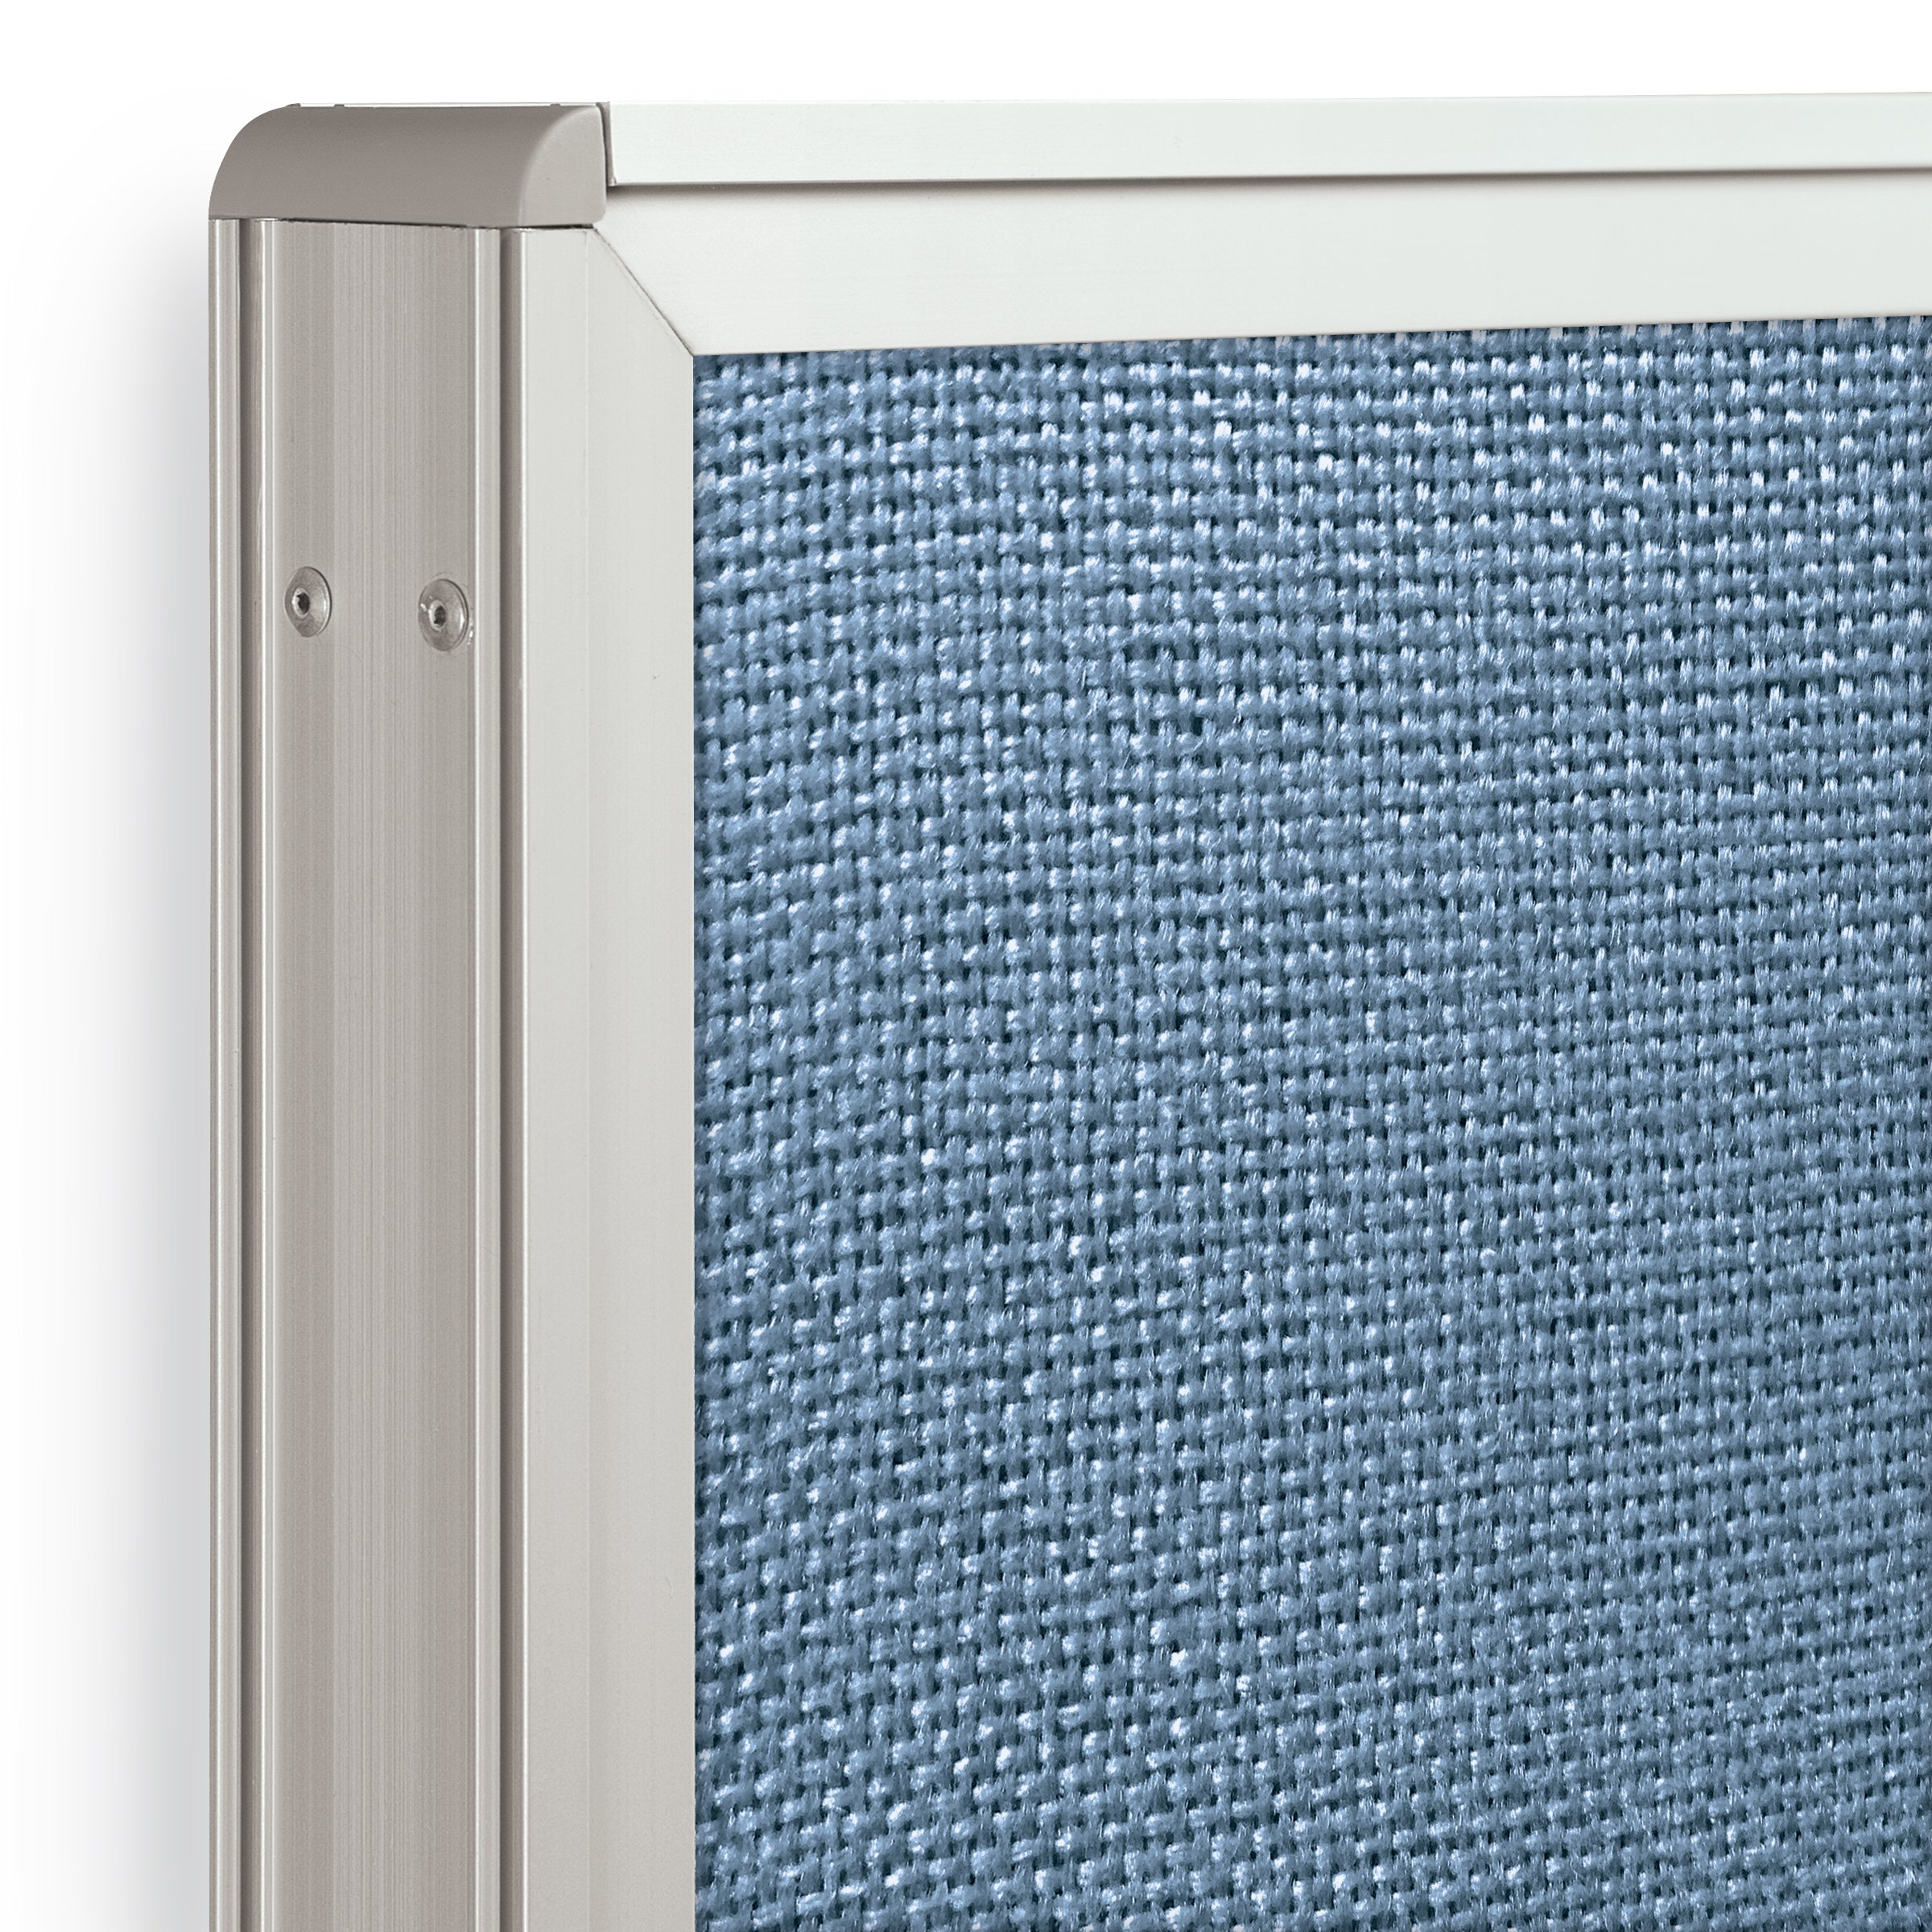 Best-Rite 72 x 36 Inch Standard Modular Divider Panel, Markerboard and Blue Fabric, (66223) by Best-Rite (Image #4)